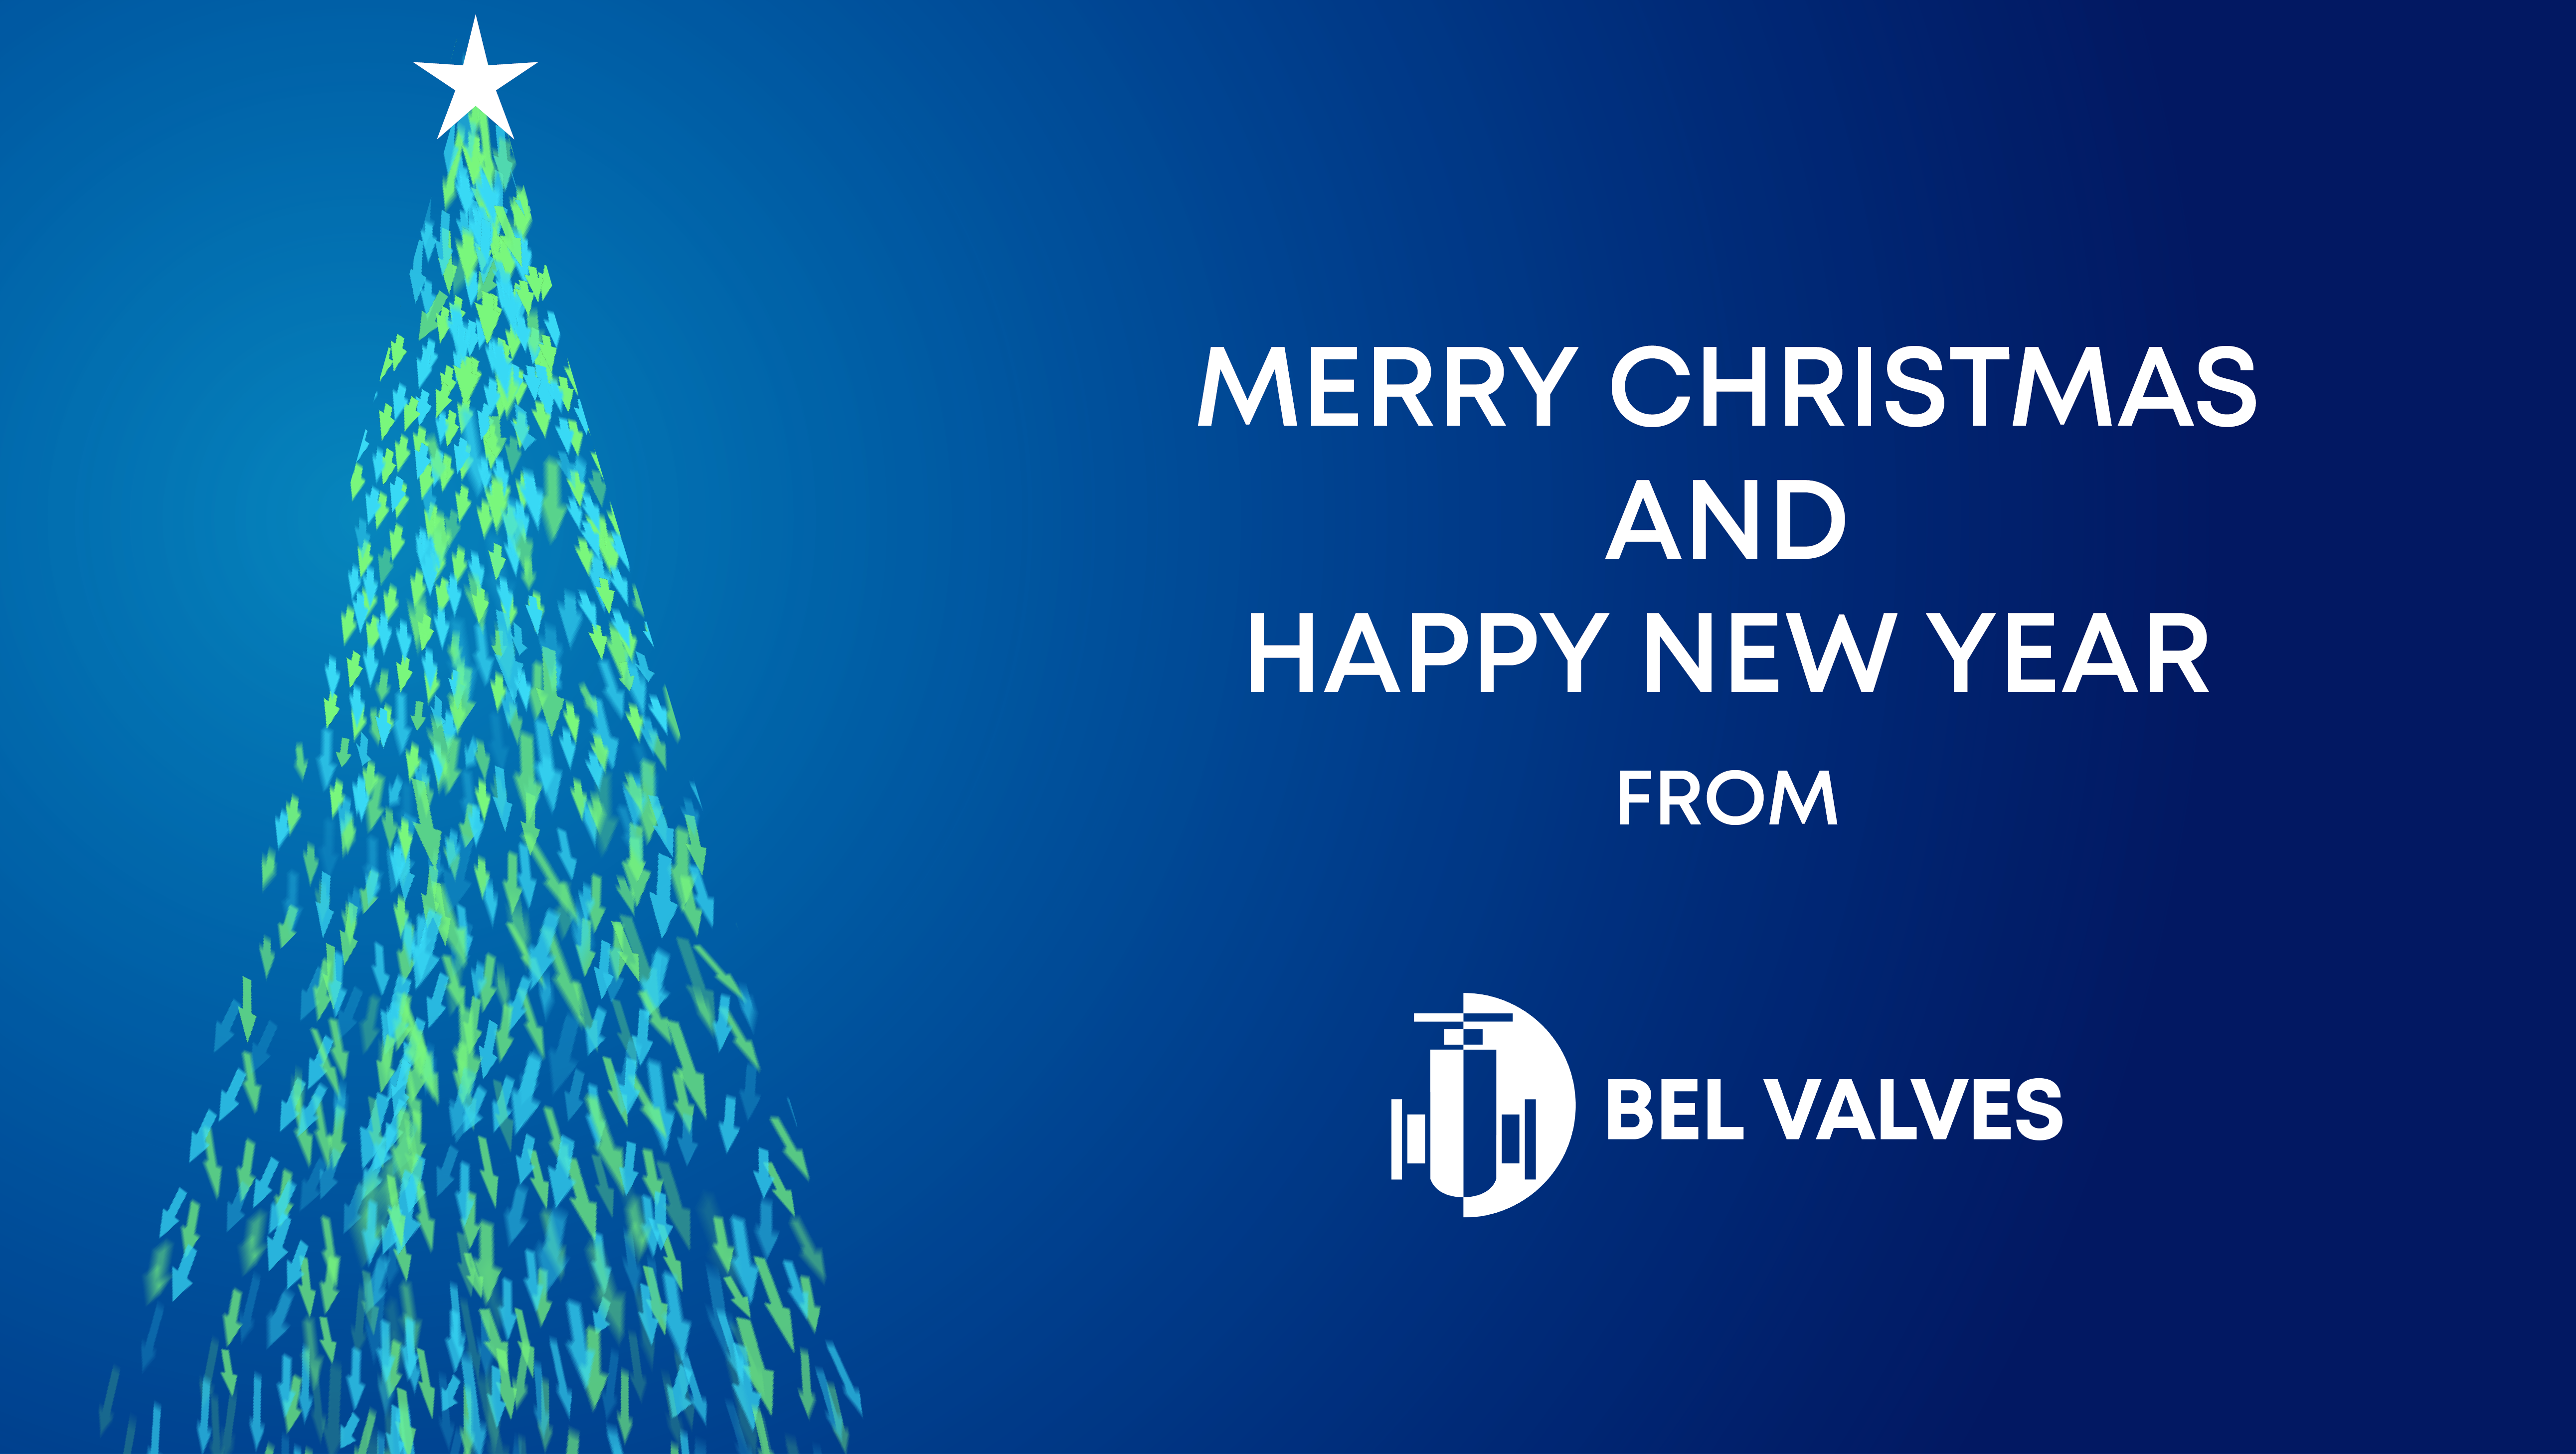 Merry Christmas and Happy New Year from BEL Valves graphic with Christmas tree